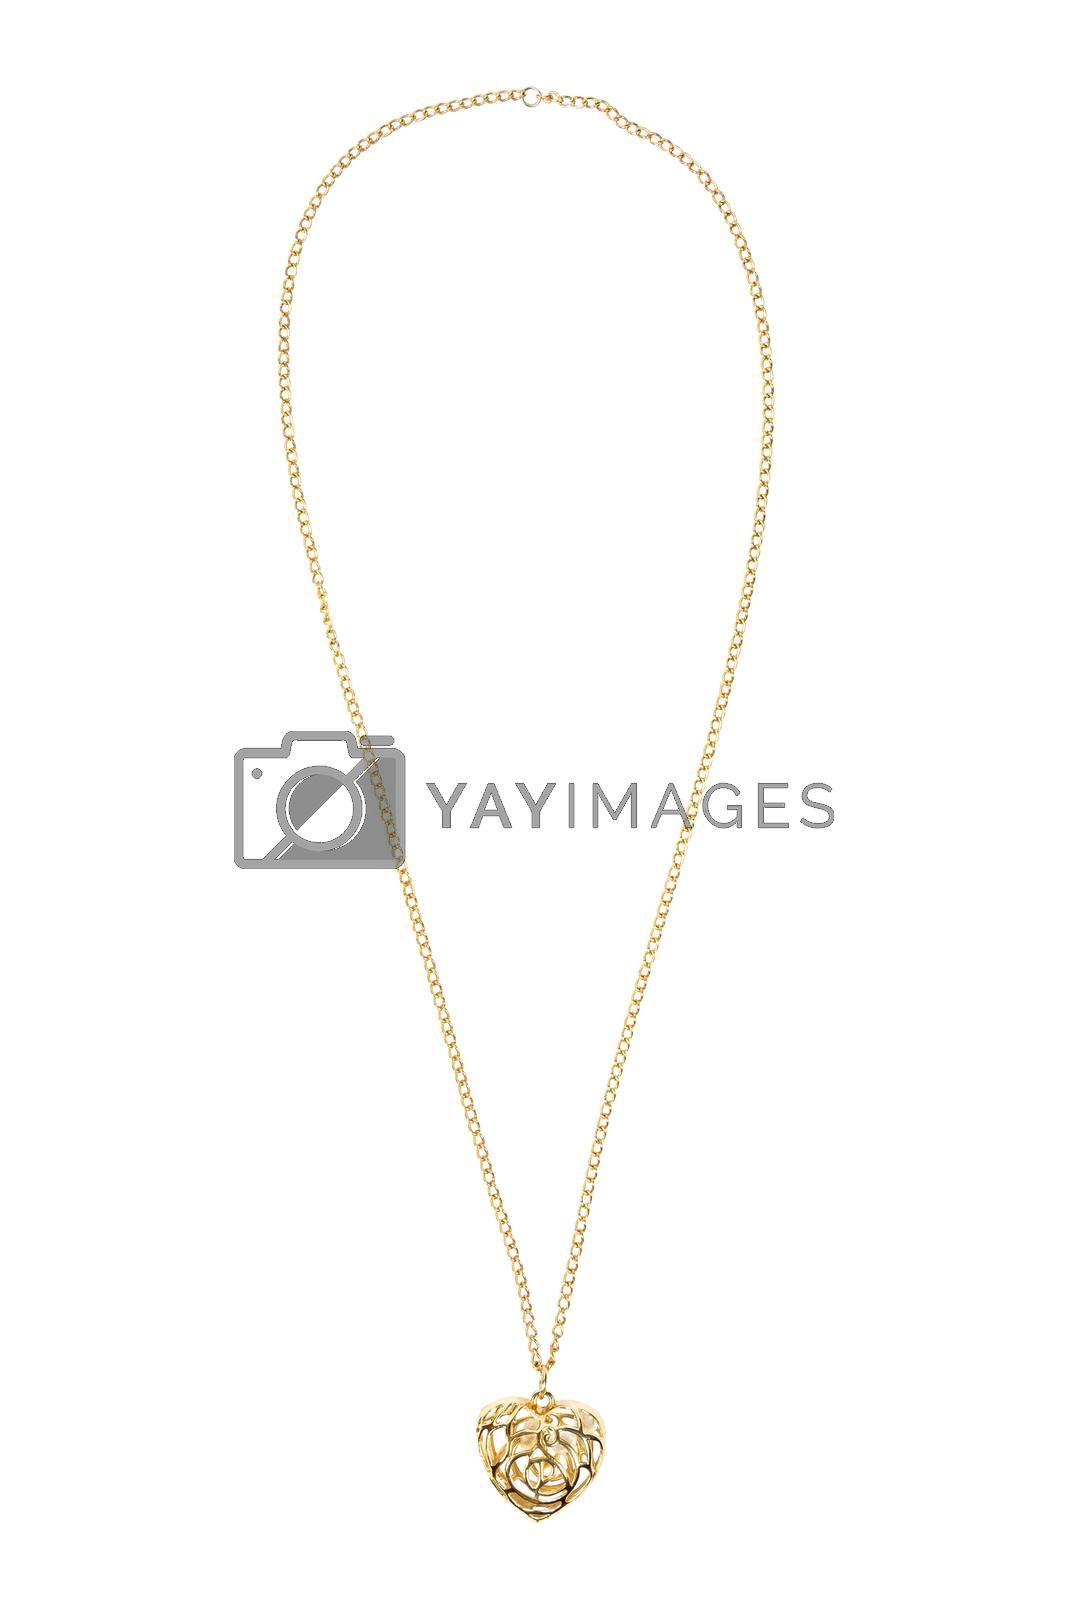 Heart shaped gold necklace isolated on white background with clipping path